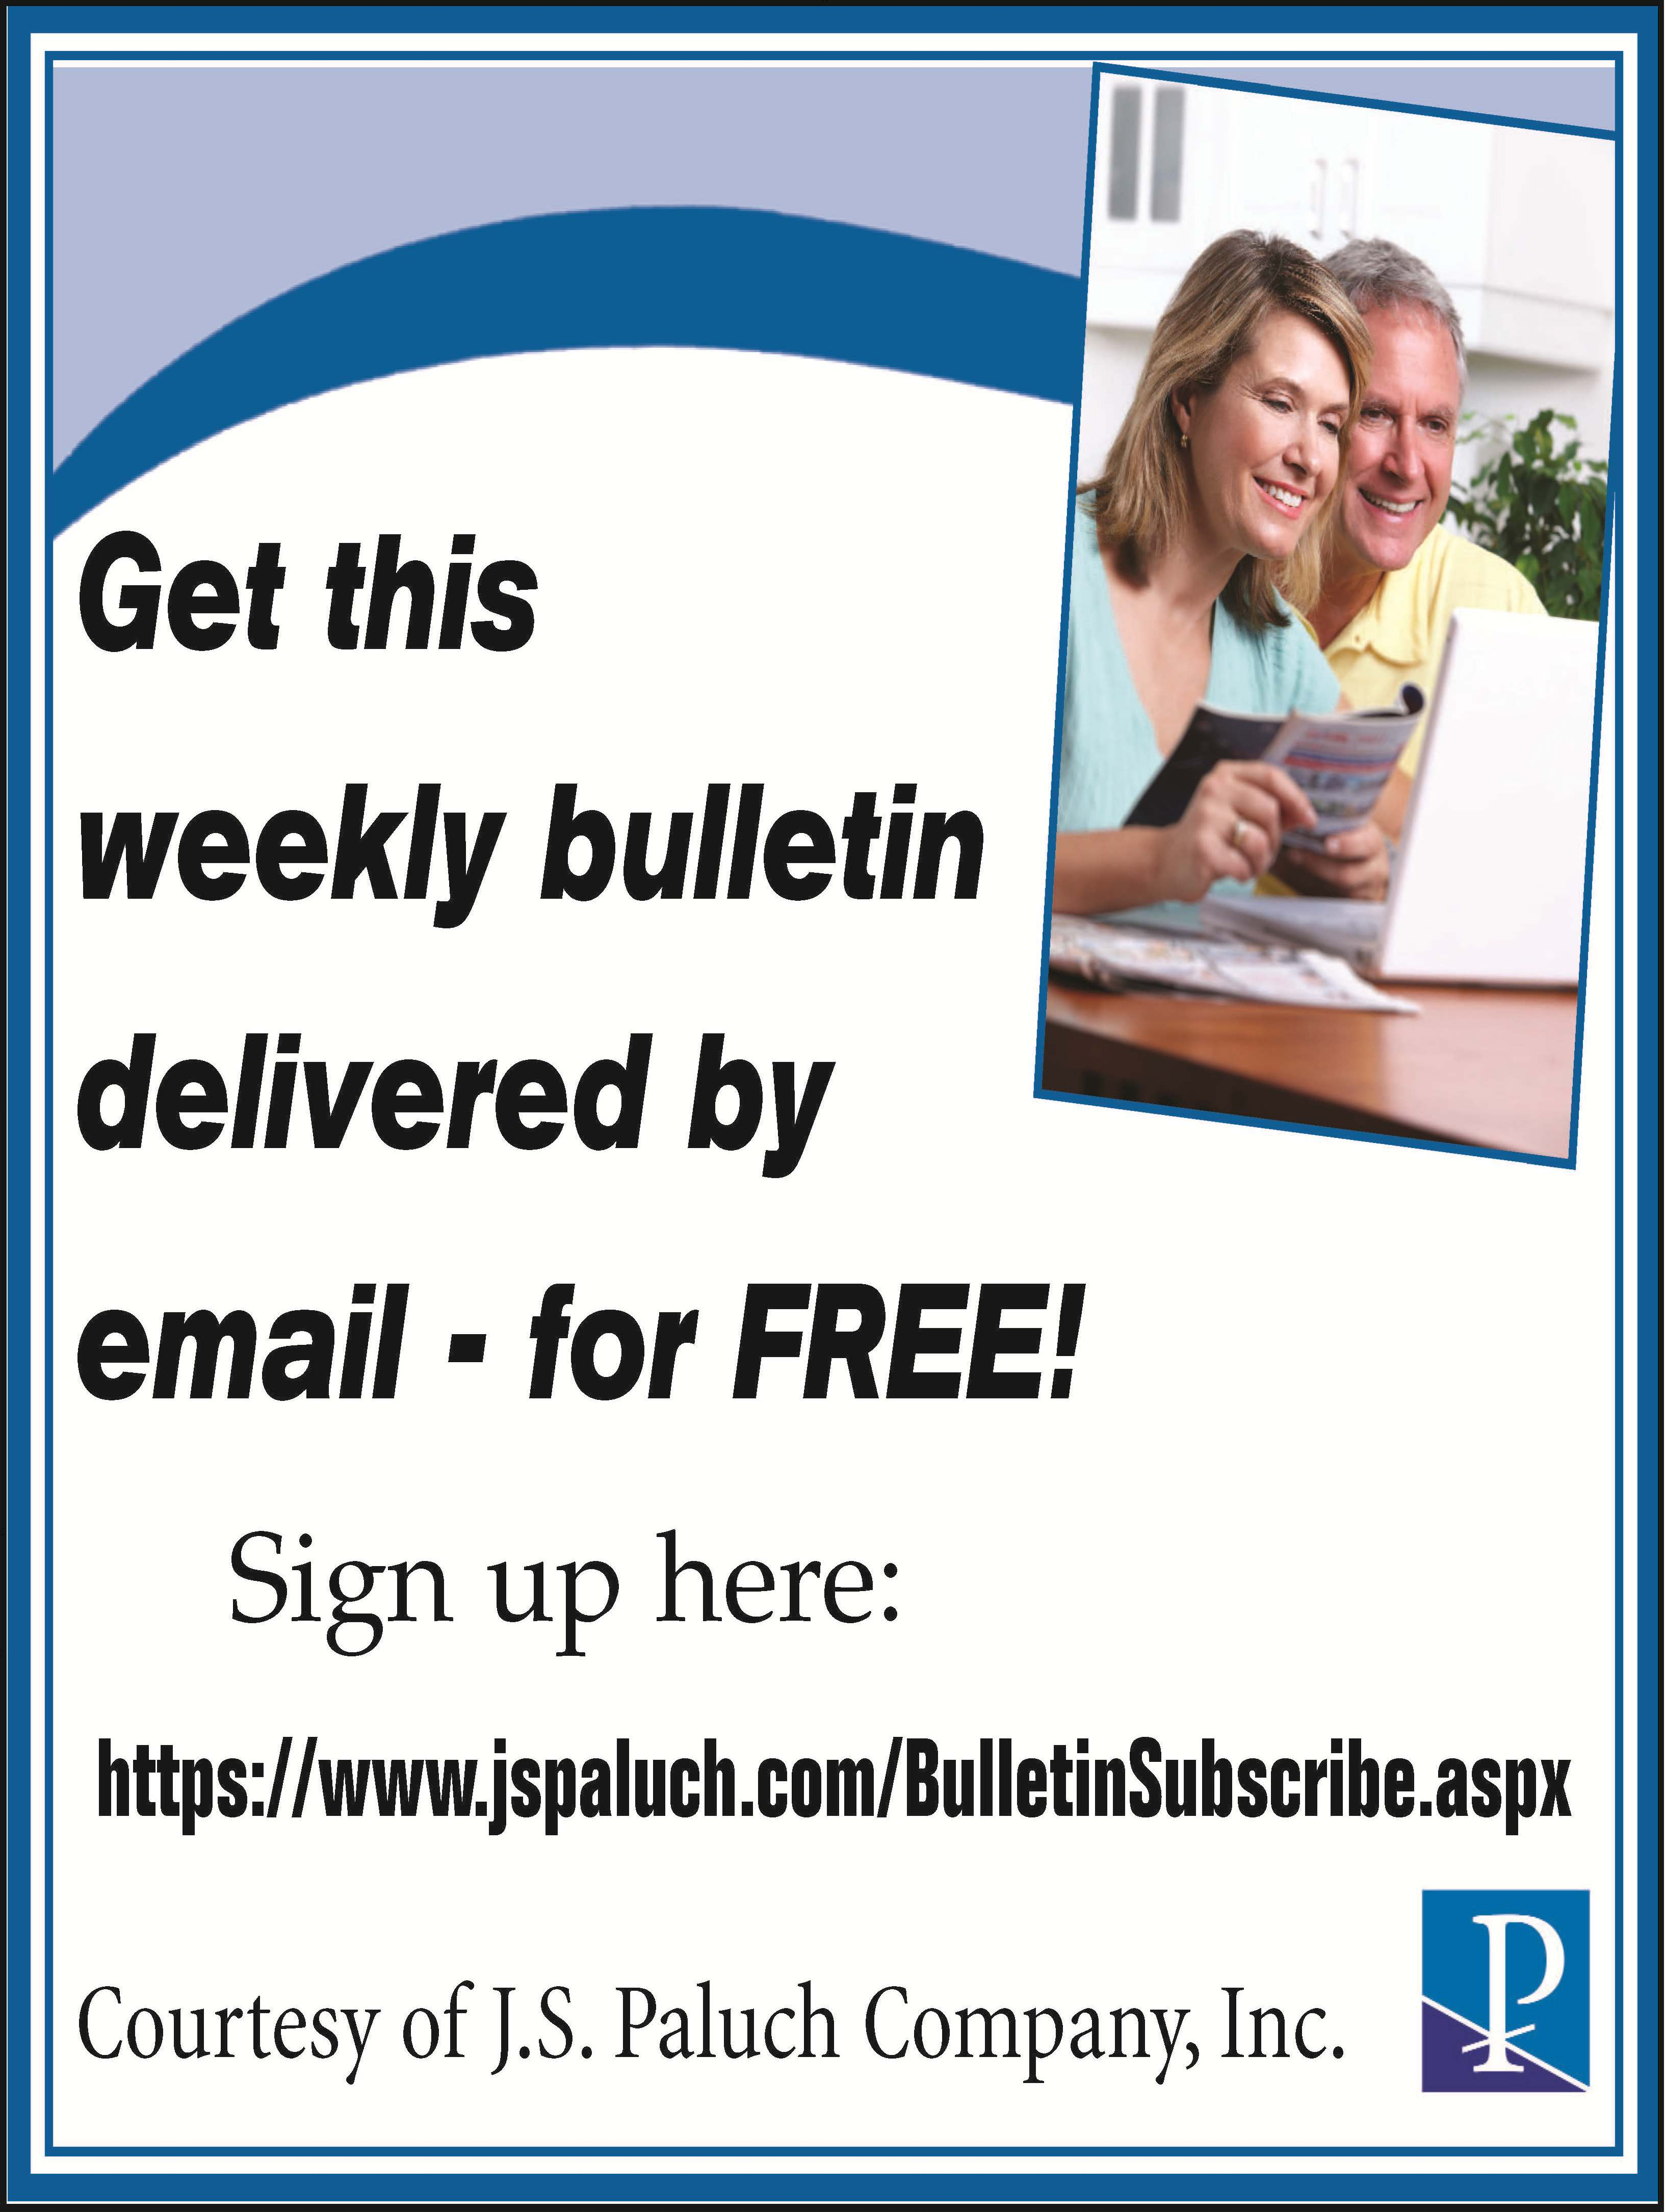 Get the Sunday bulletin delivered by email